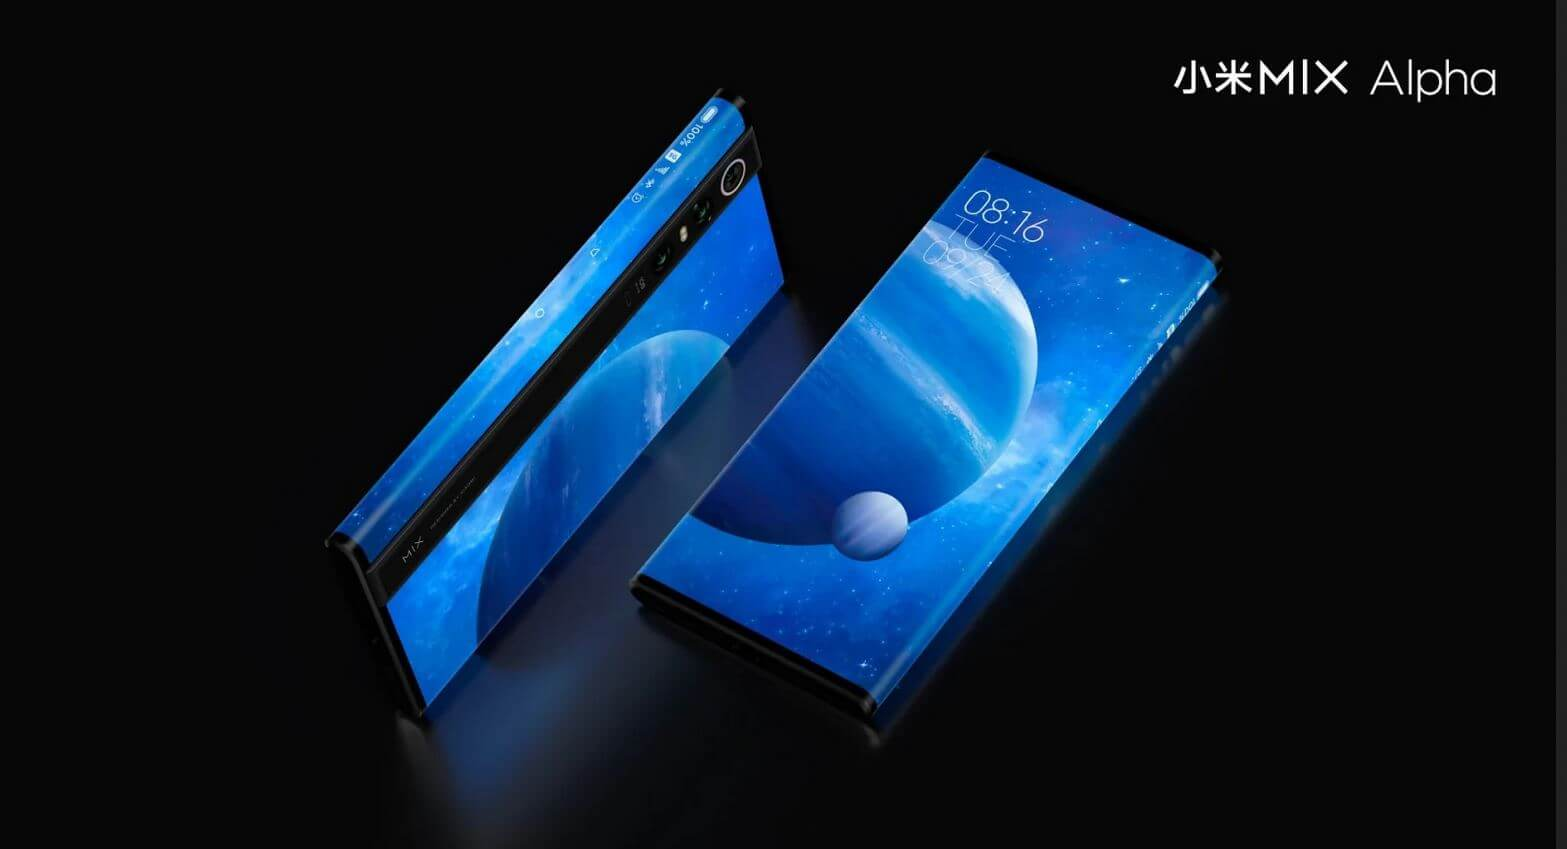 xiaomi mi mix alpha wraparound screen